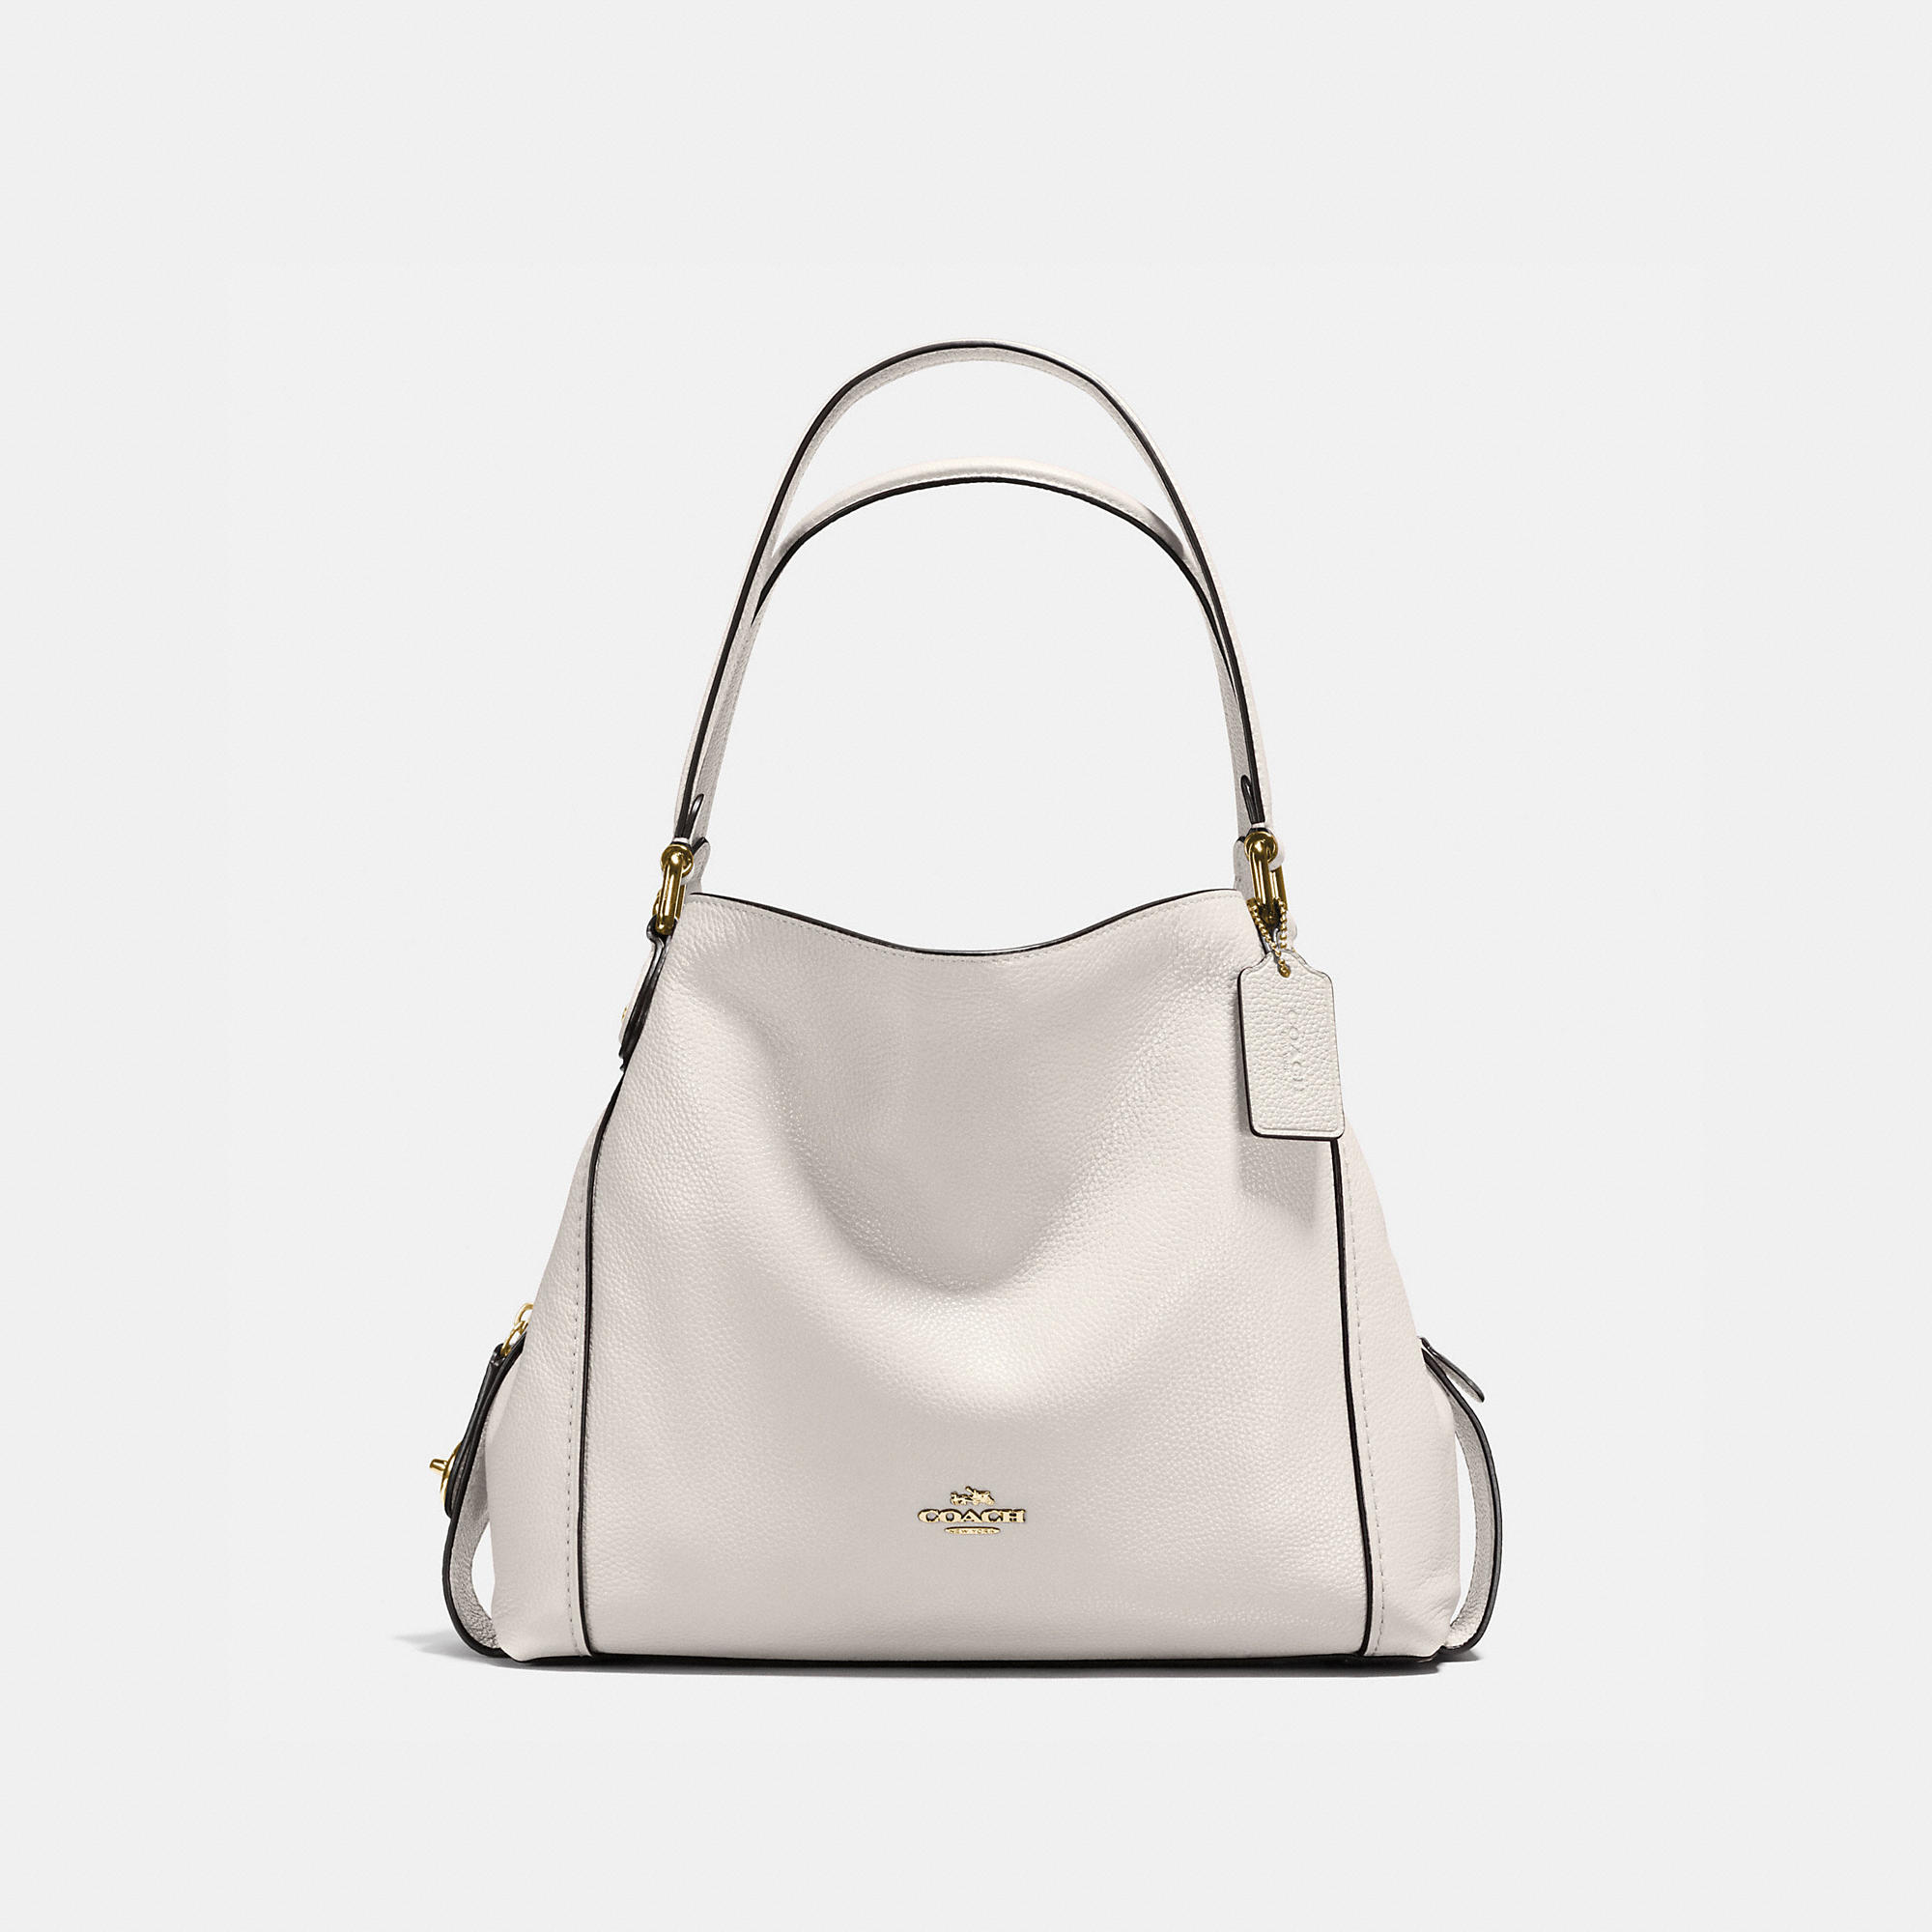 Coach Edie Shoulder Bag 31 In Polished Pebble Leather